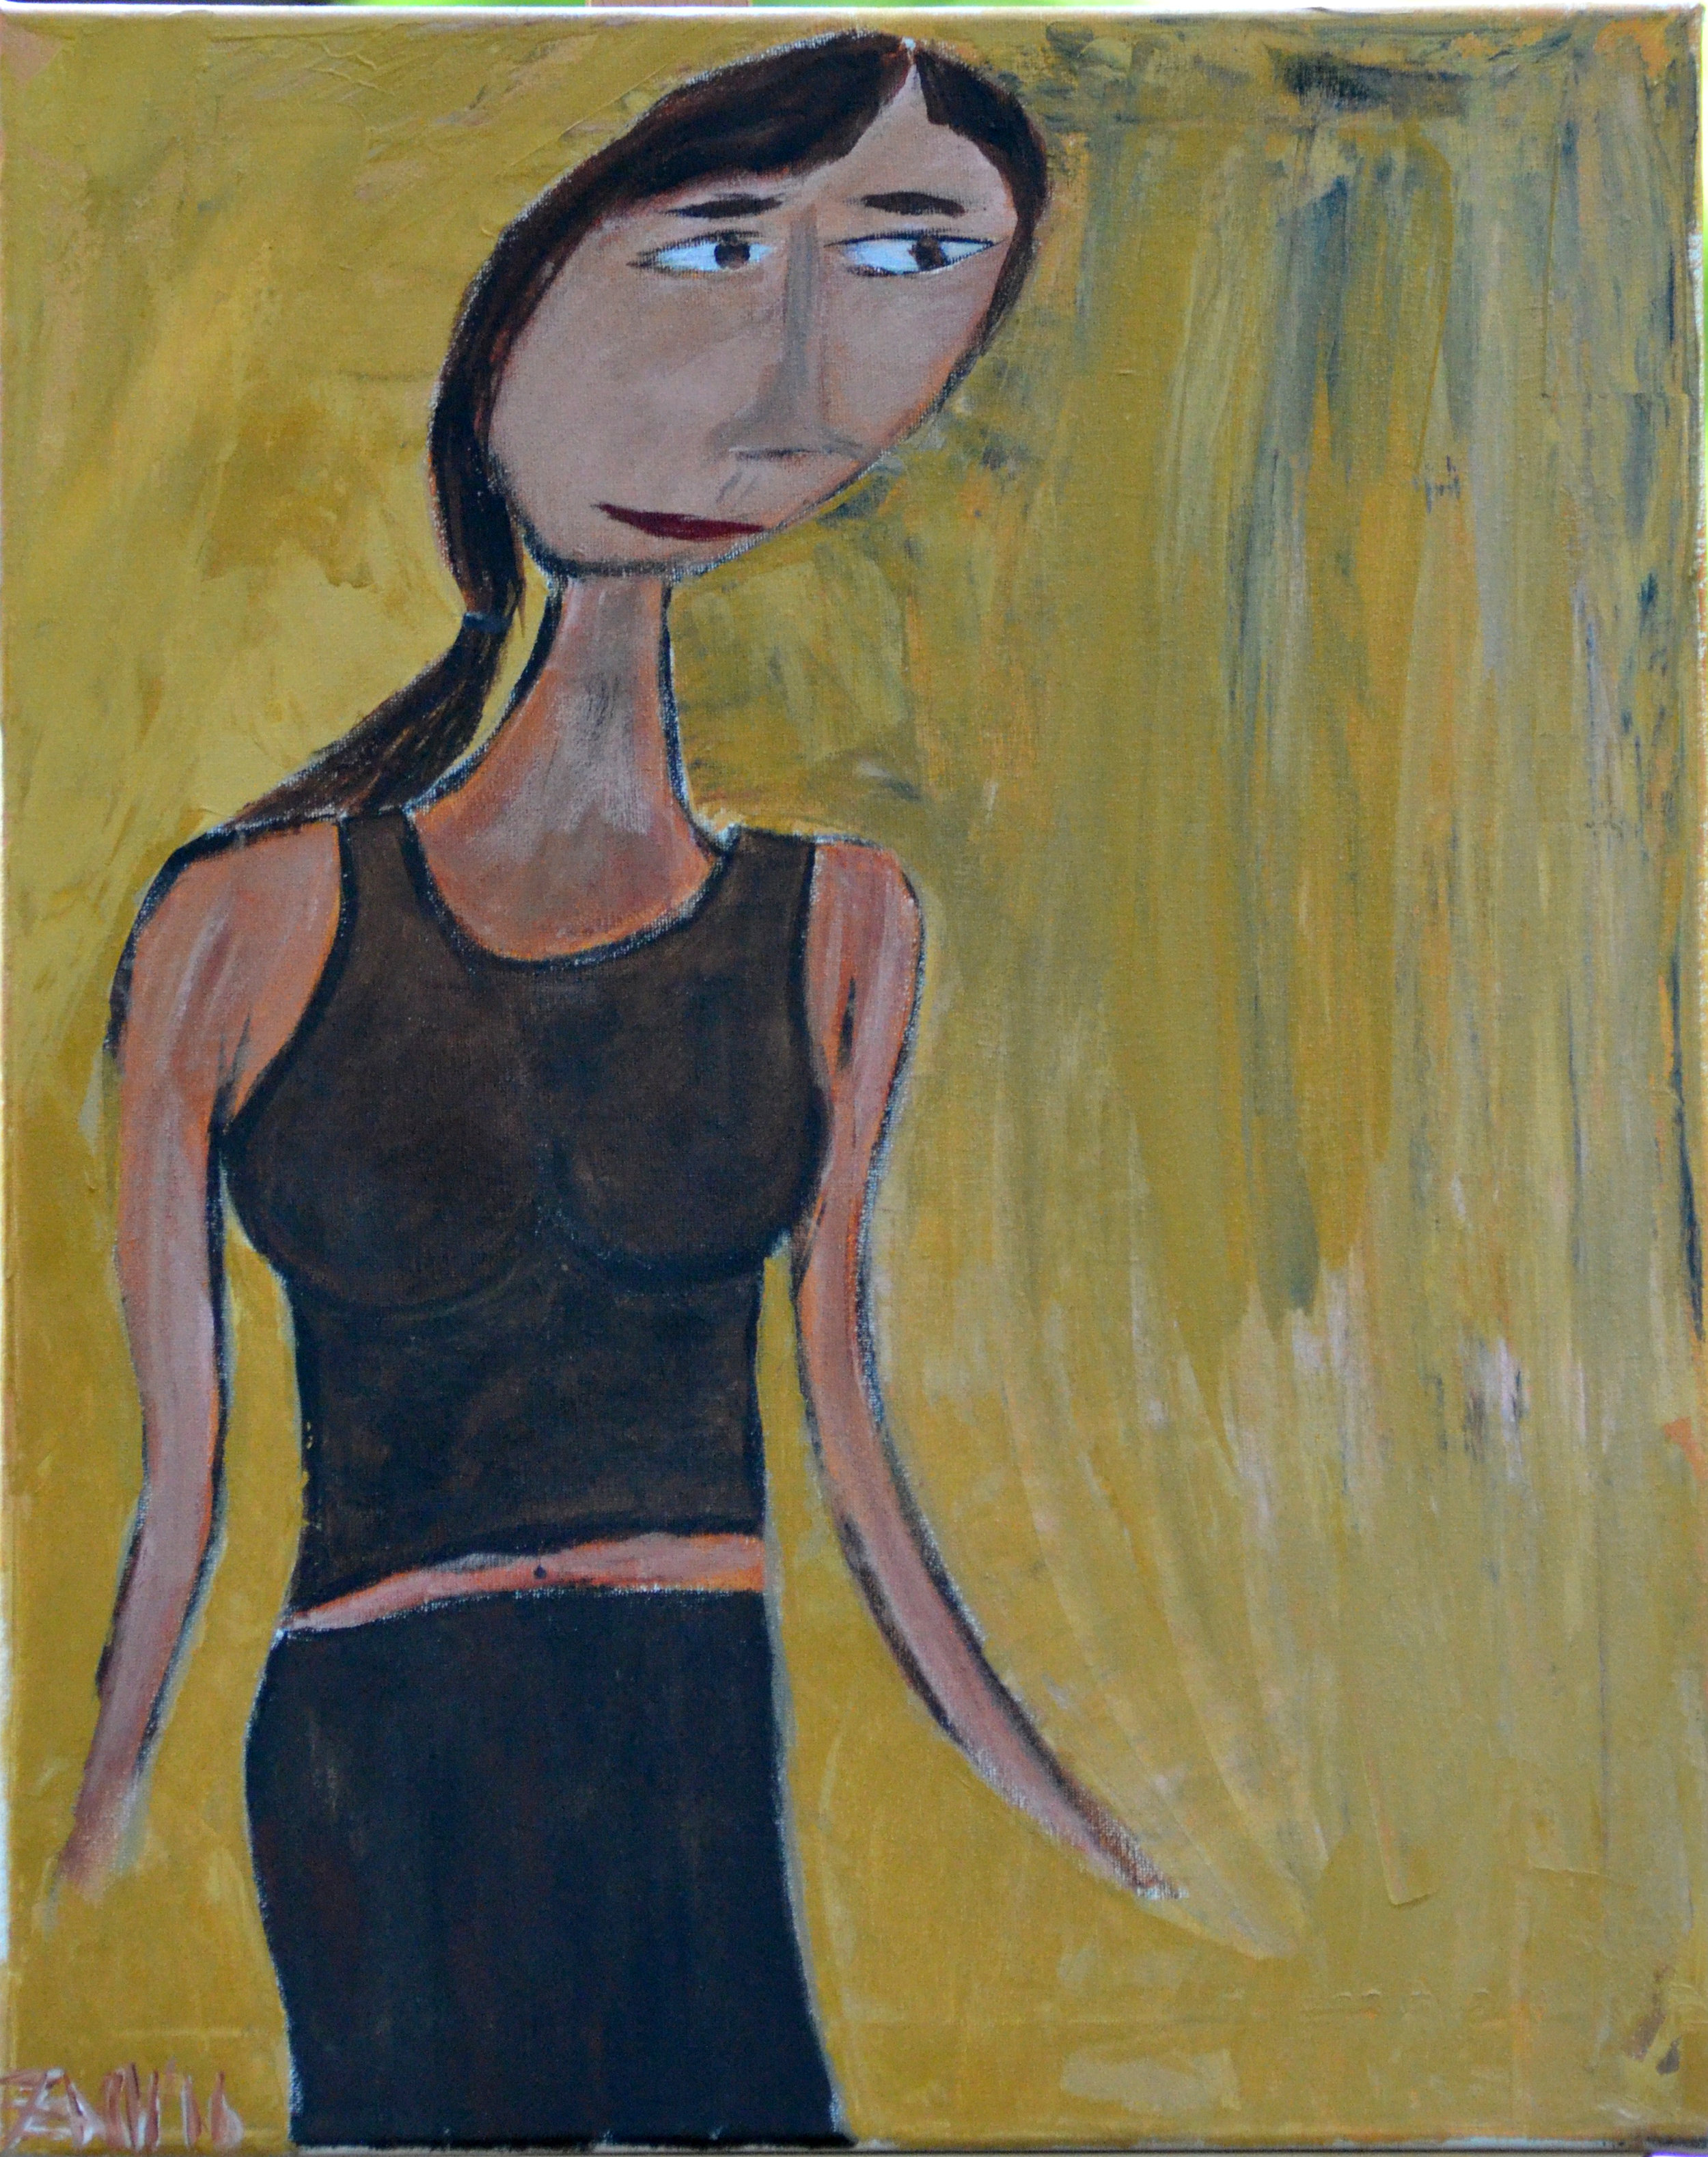 Woman (2016, acrylic, 16 by 20)